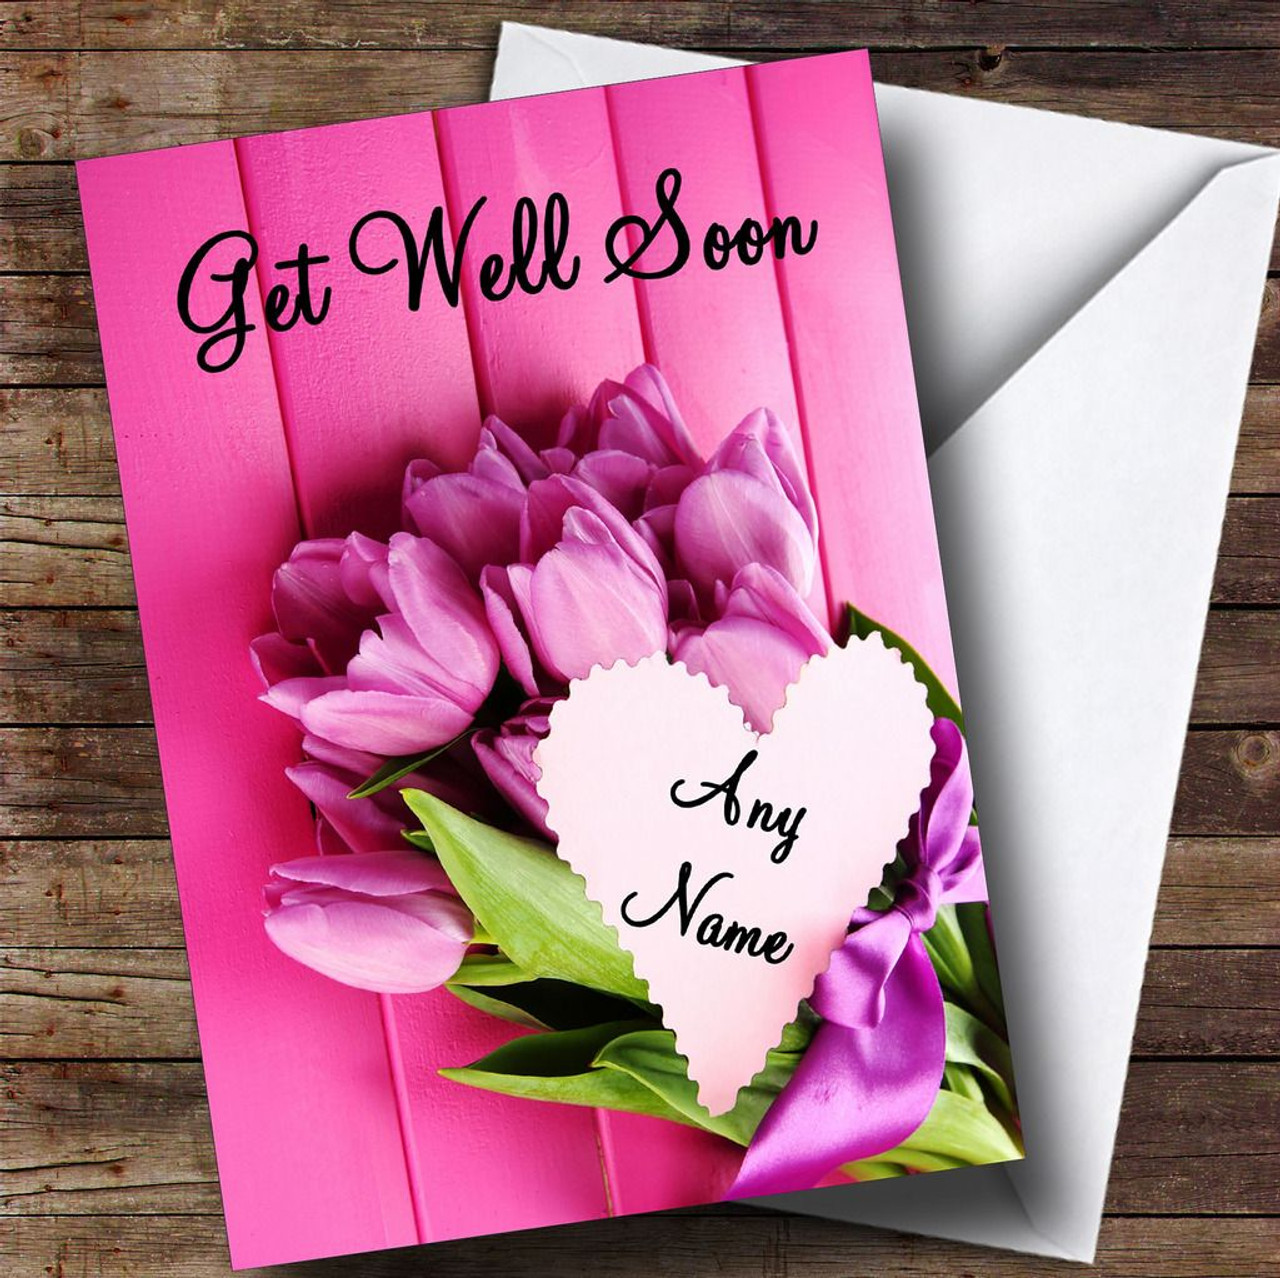 Fullsize Of Get Well Soon Card